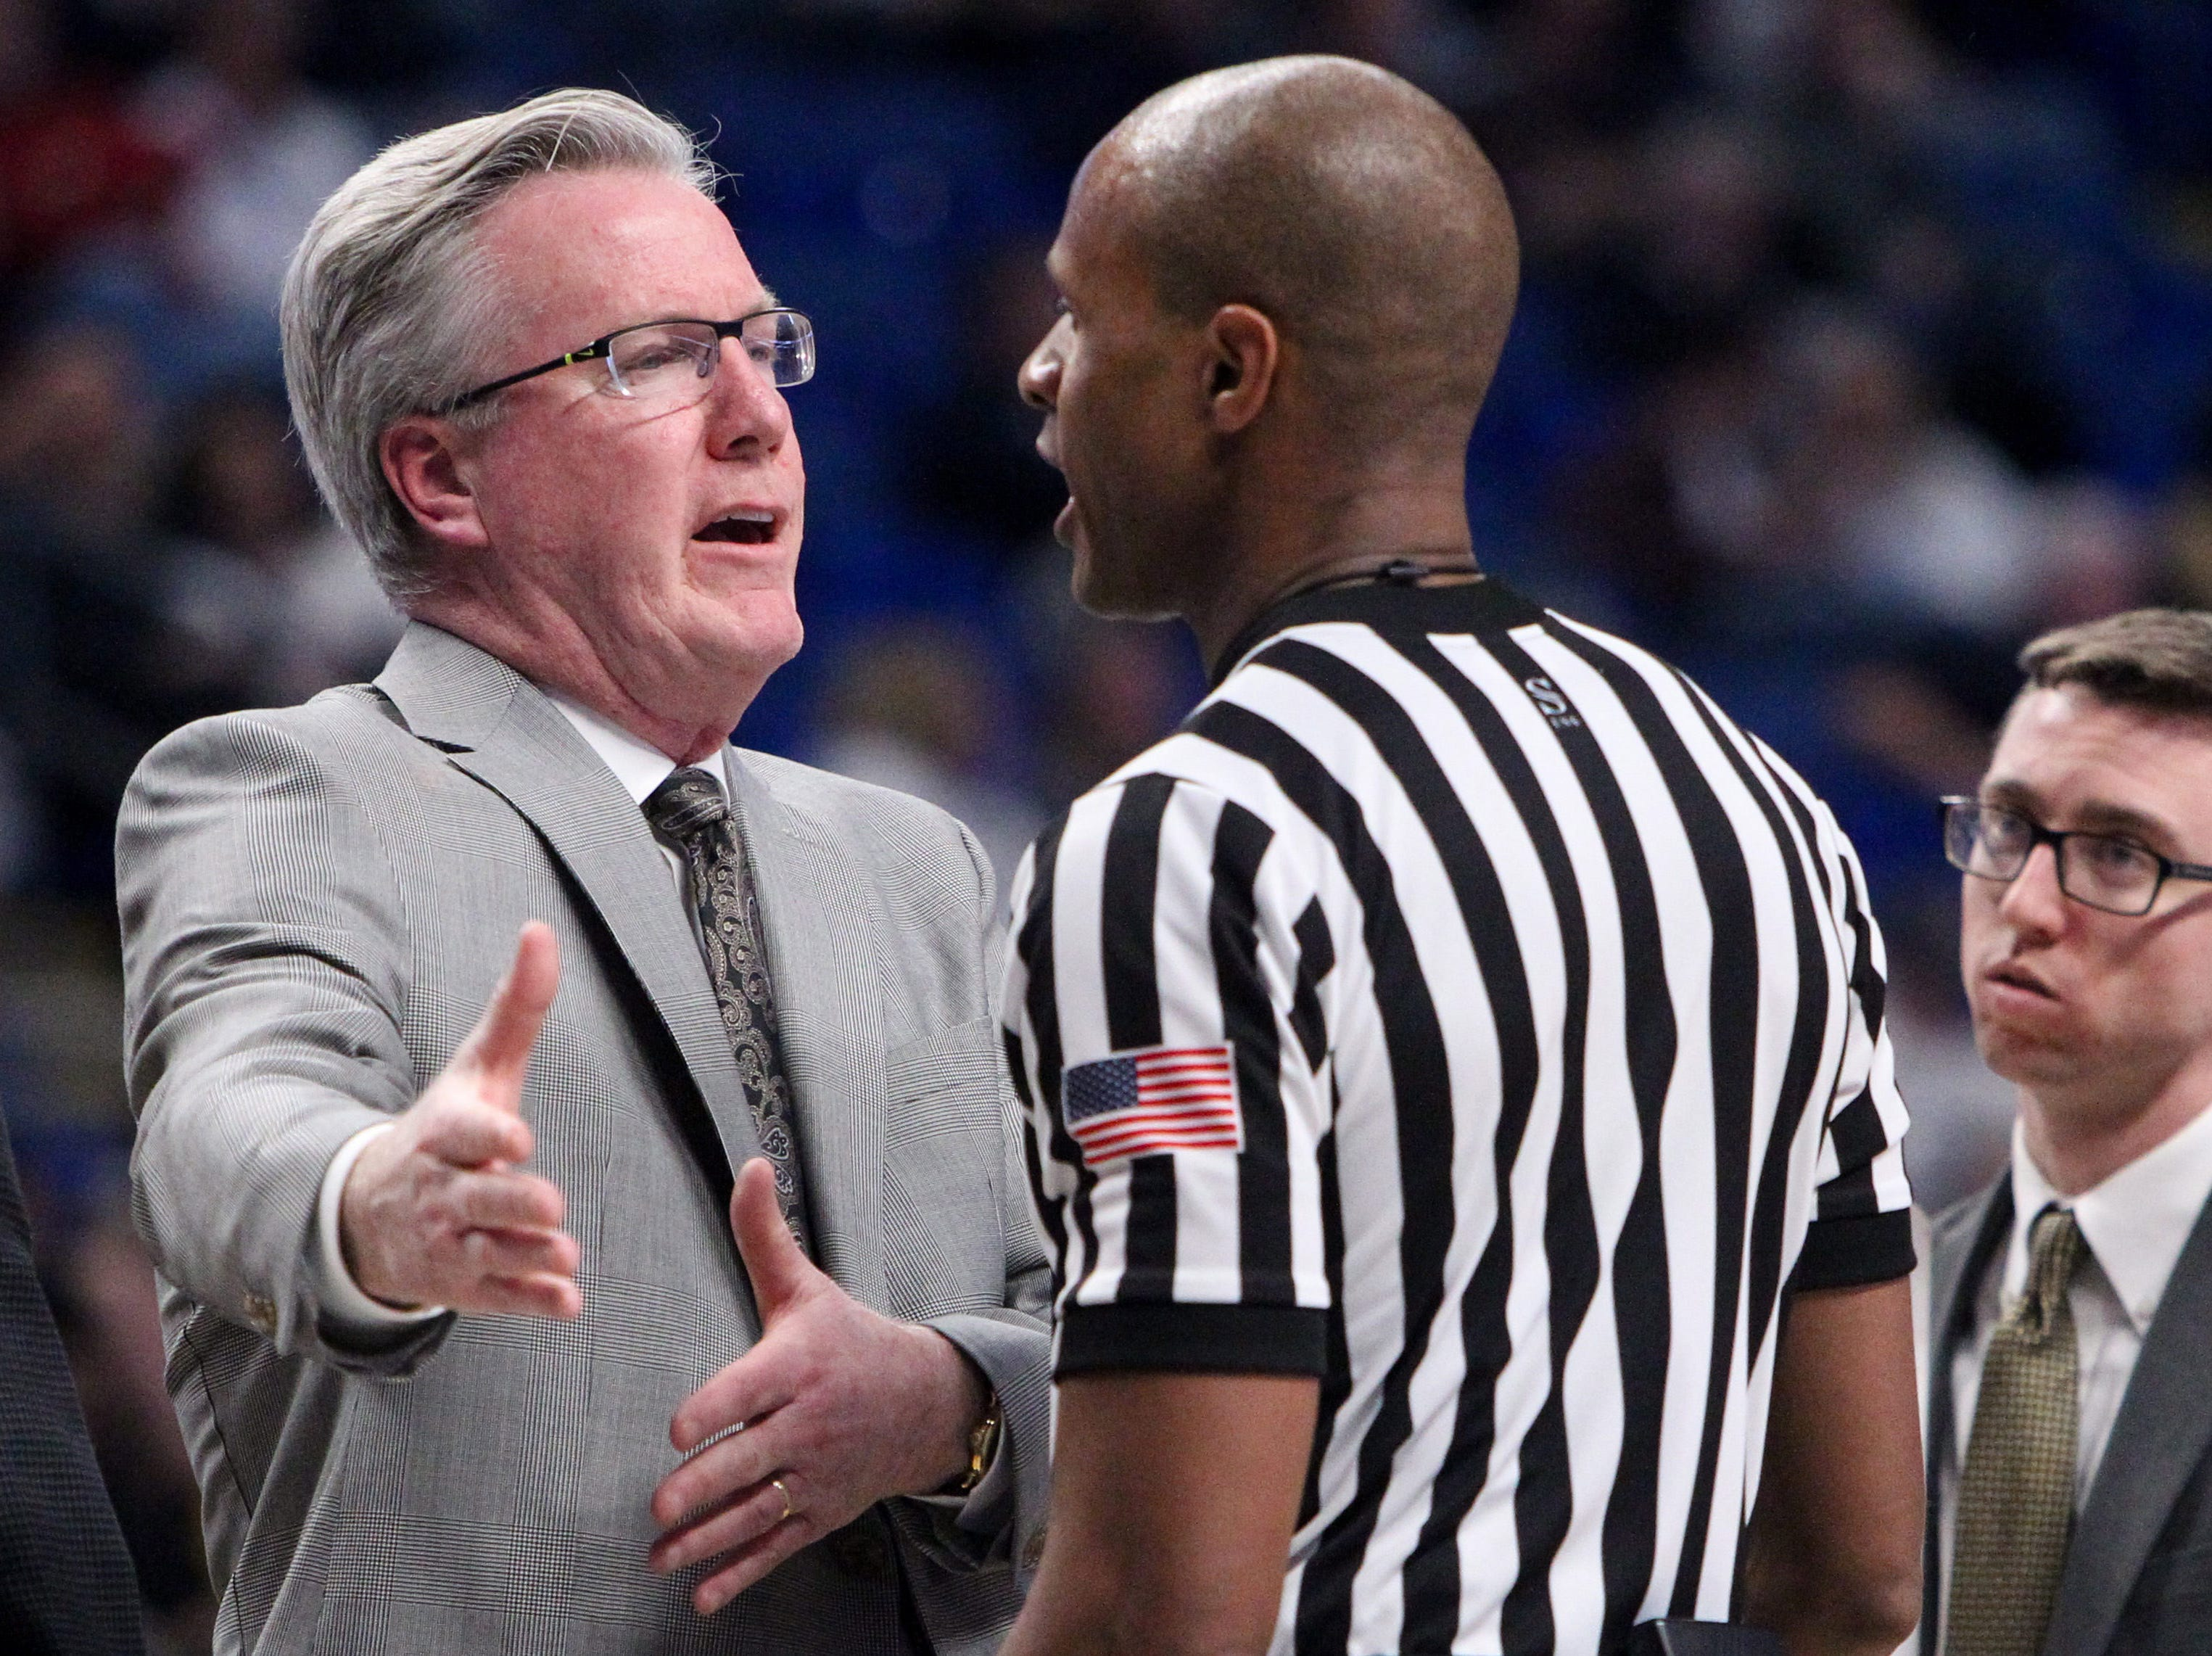 Jan 16, 2019; University Park, PA, USA; Iowa Hawkeyes head coach Fran McCaffery argues a call during the second half against the Penn State Nittany Lions at Bryce Jordan Center. Mandatory Credit: Matthew O'Haren-USA TODAY Sports